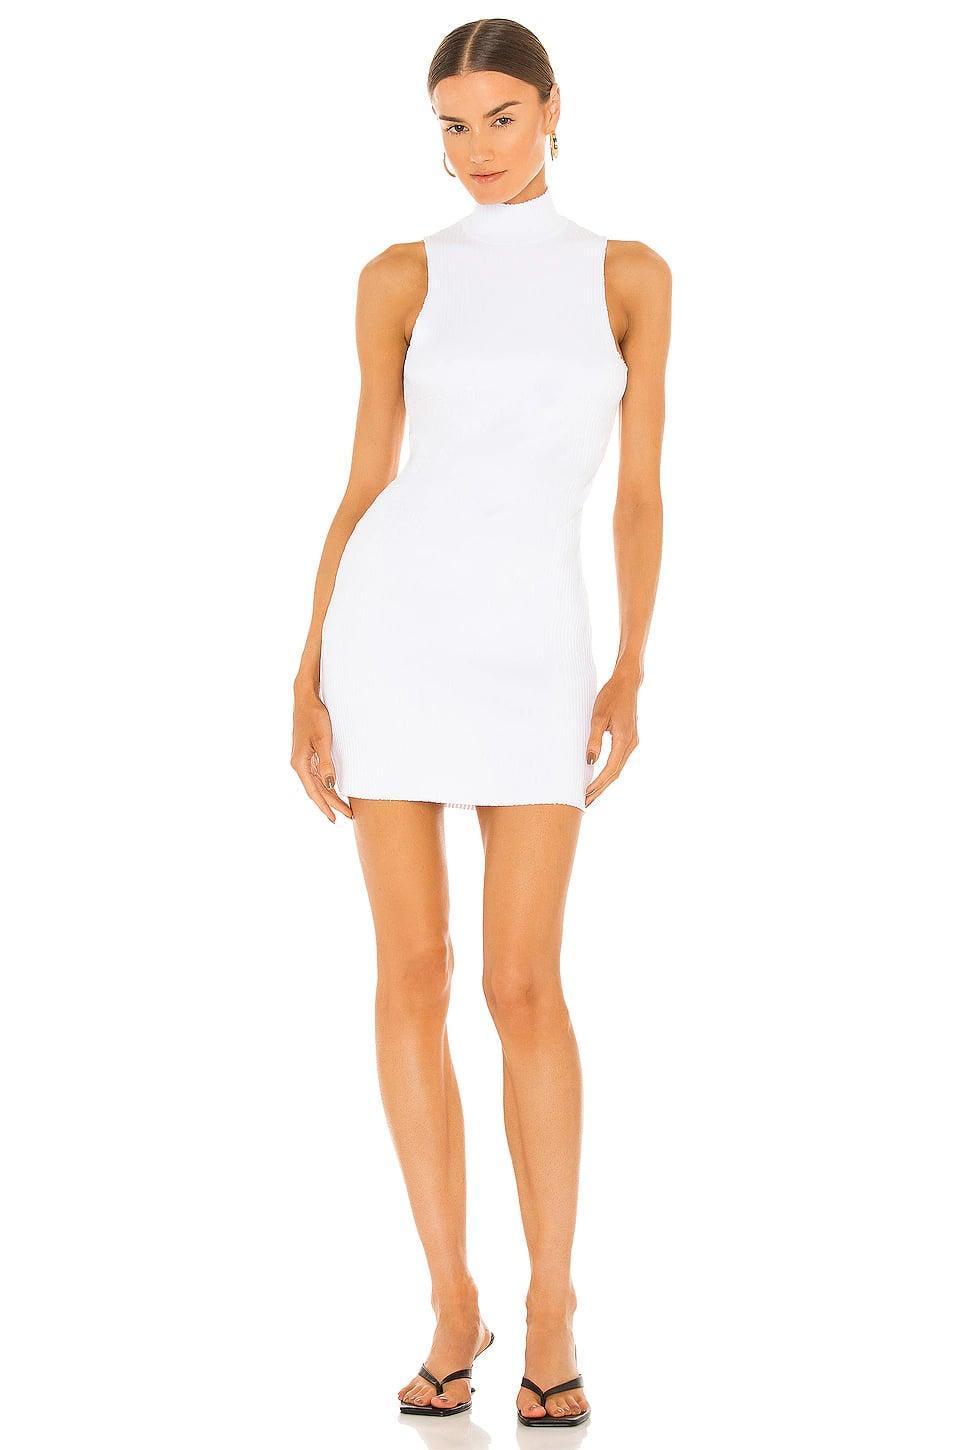 <p>This <span>Cotton Citizen x Revolve Ibiza Racerback Dress XO</span> ($185) is so fun, and easy to dress up from day to night. It looks great with sneakers, sandals, or even heels.</p>